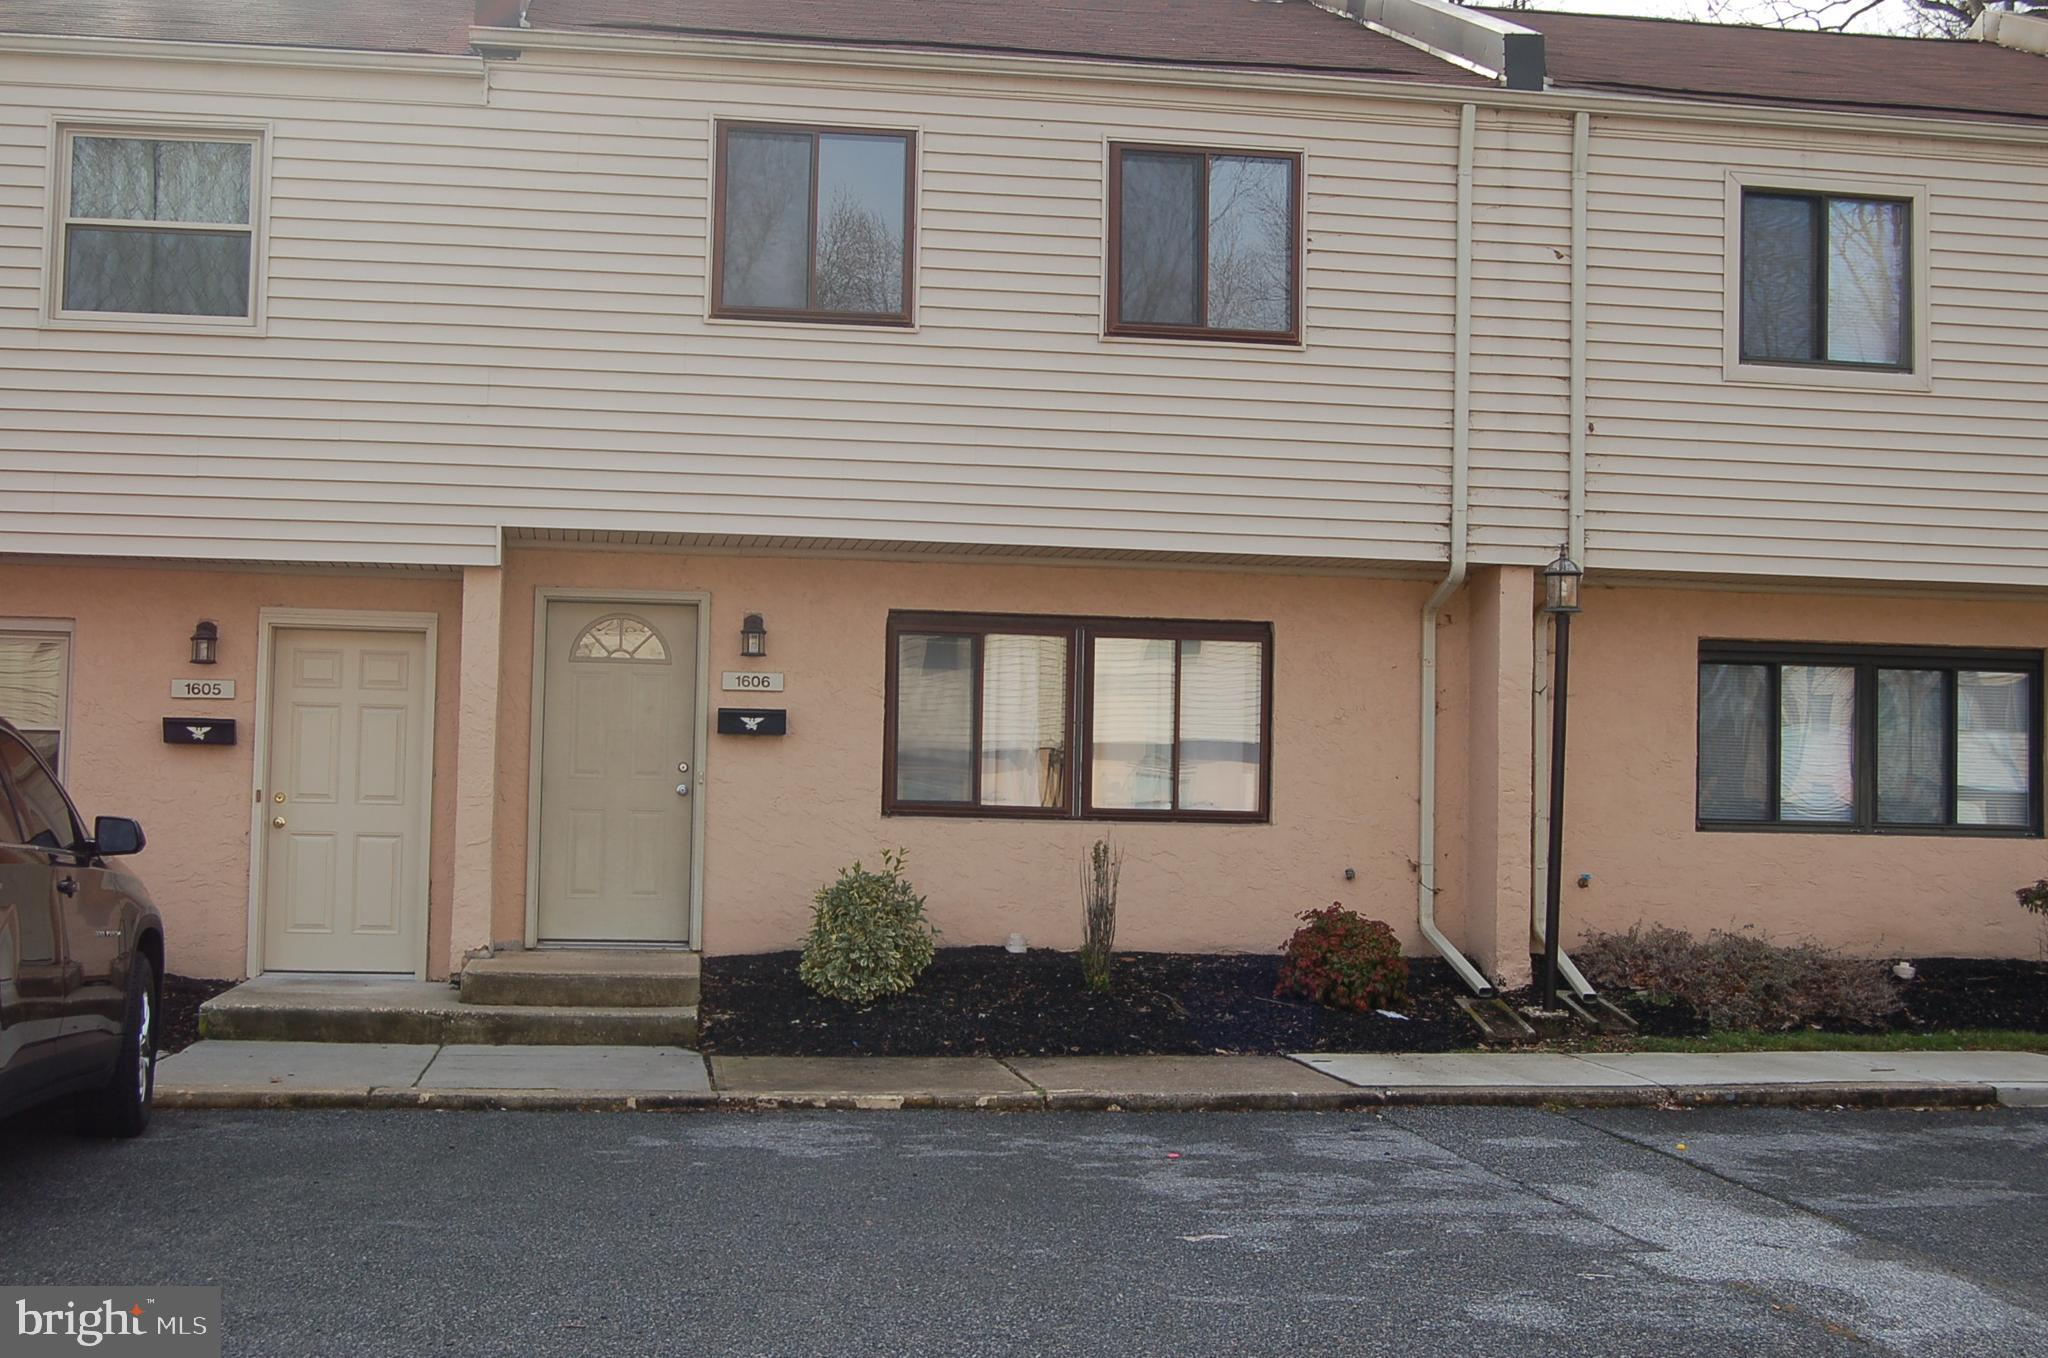 Opportunity Awaits! .....This rarely available spacious 3 bedroom 2.5 bath townhome in Chelmsford is